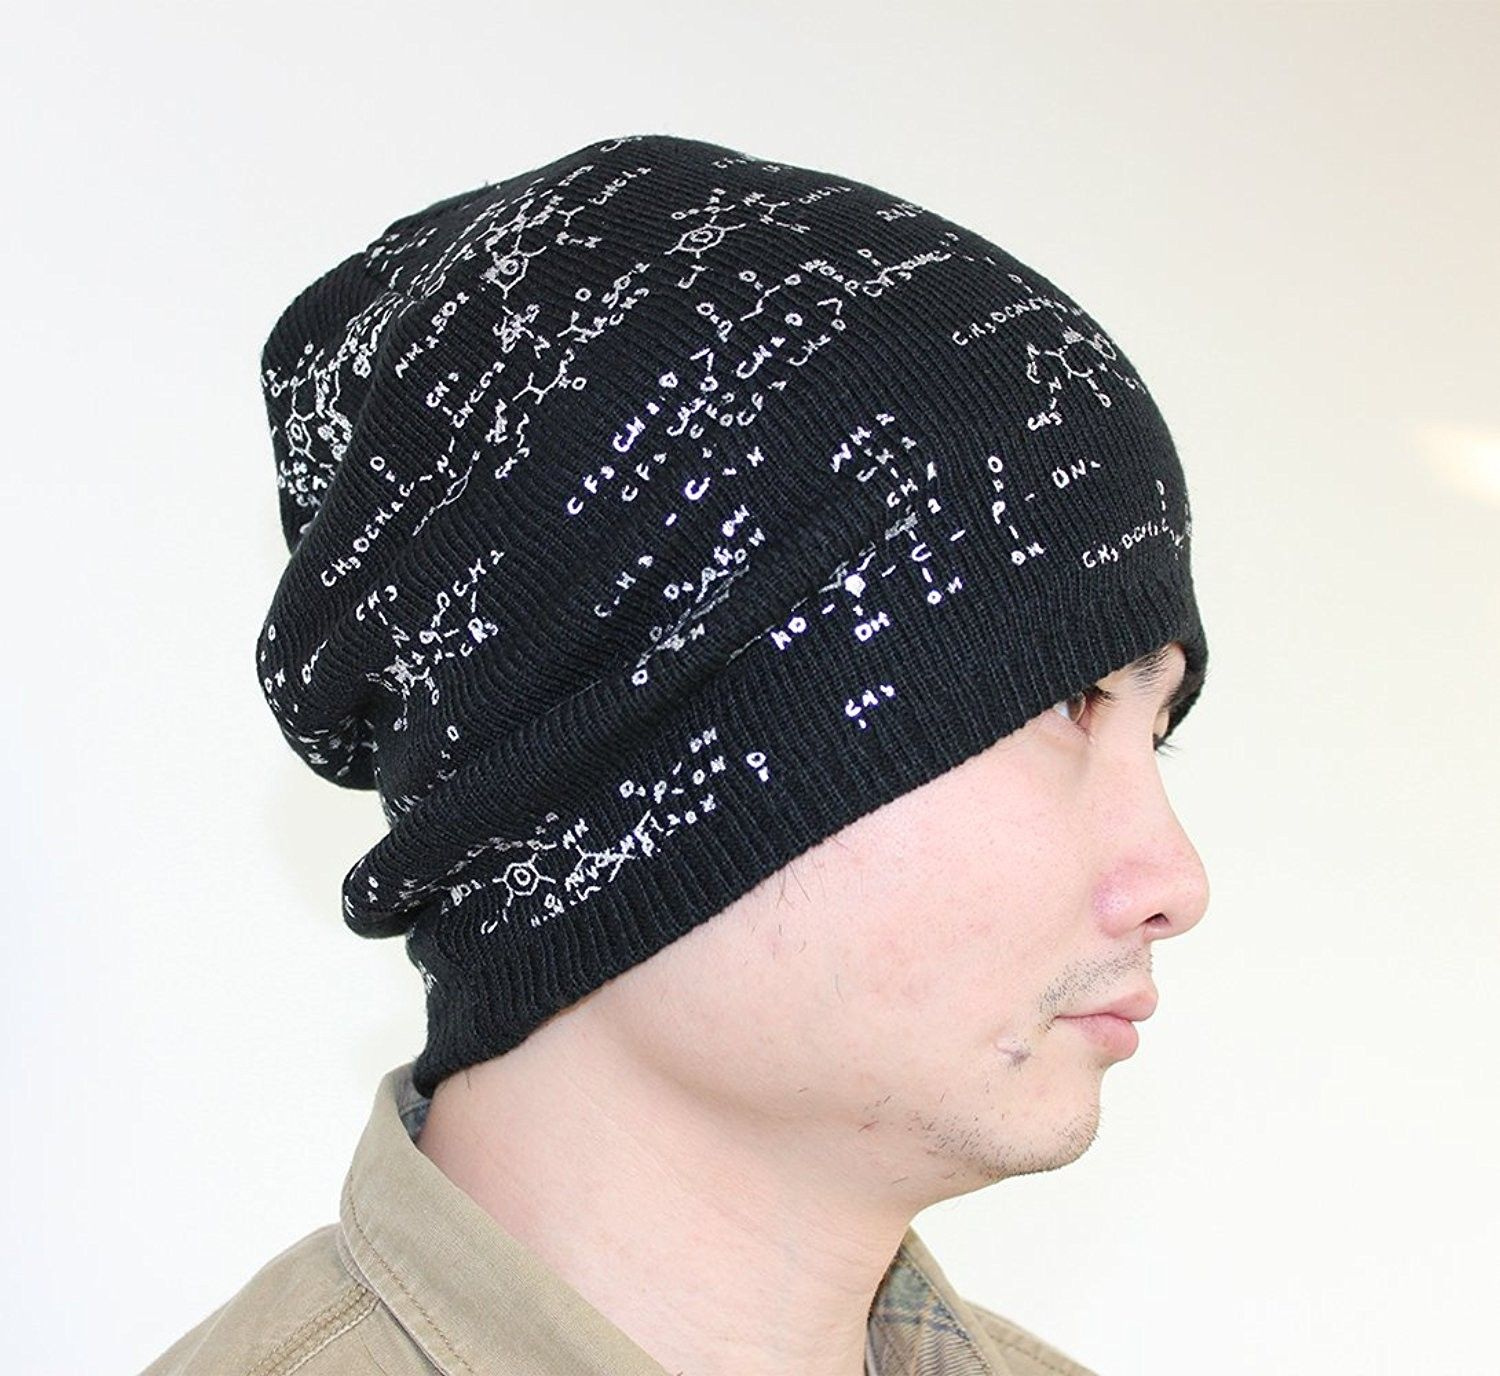 a7401e9f672 Chunky Cable Knit Beanie Hat Double Layers Winter Warm Skully Cap ...